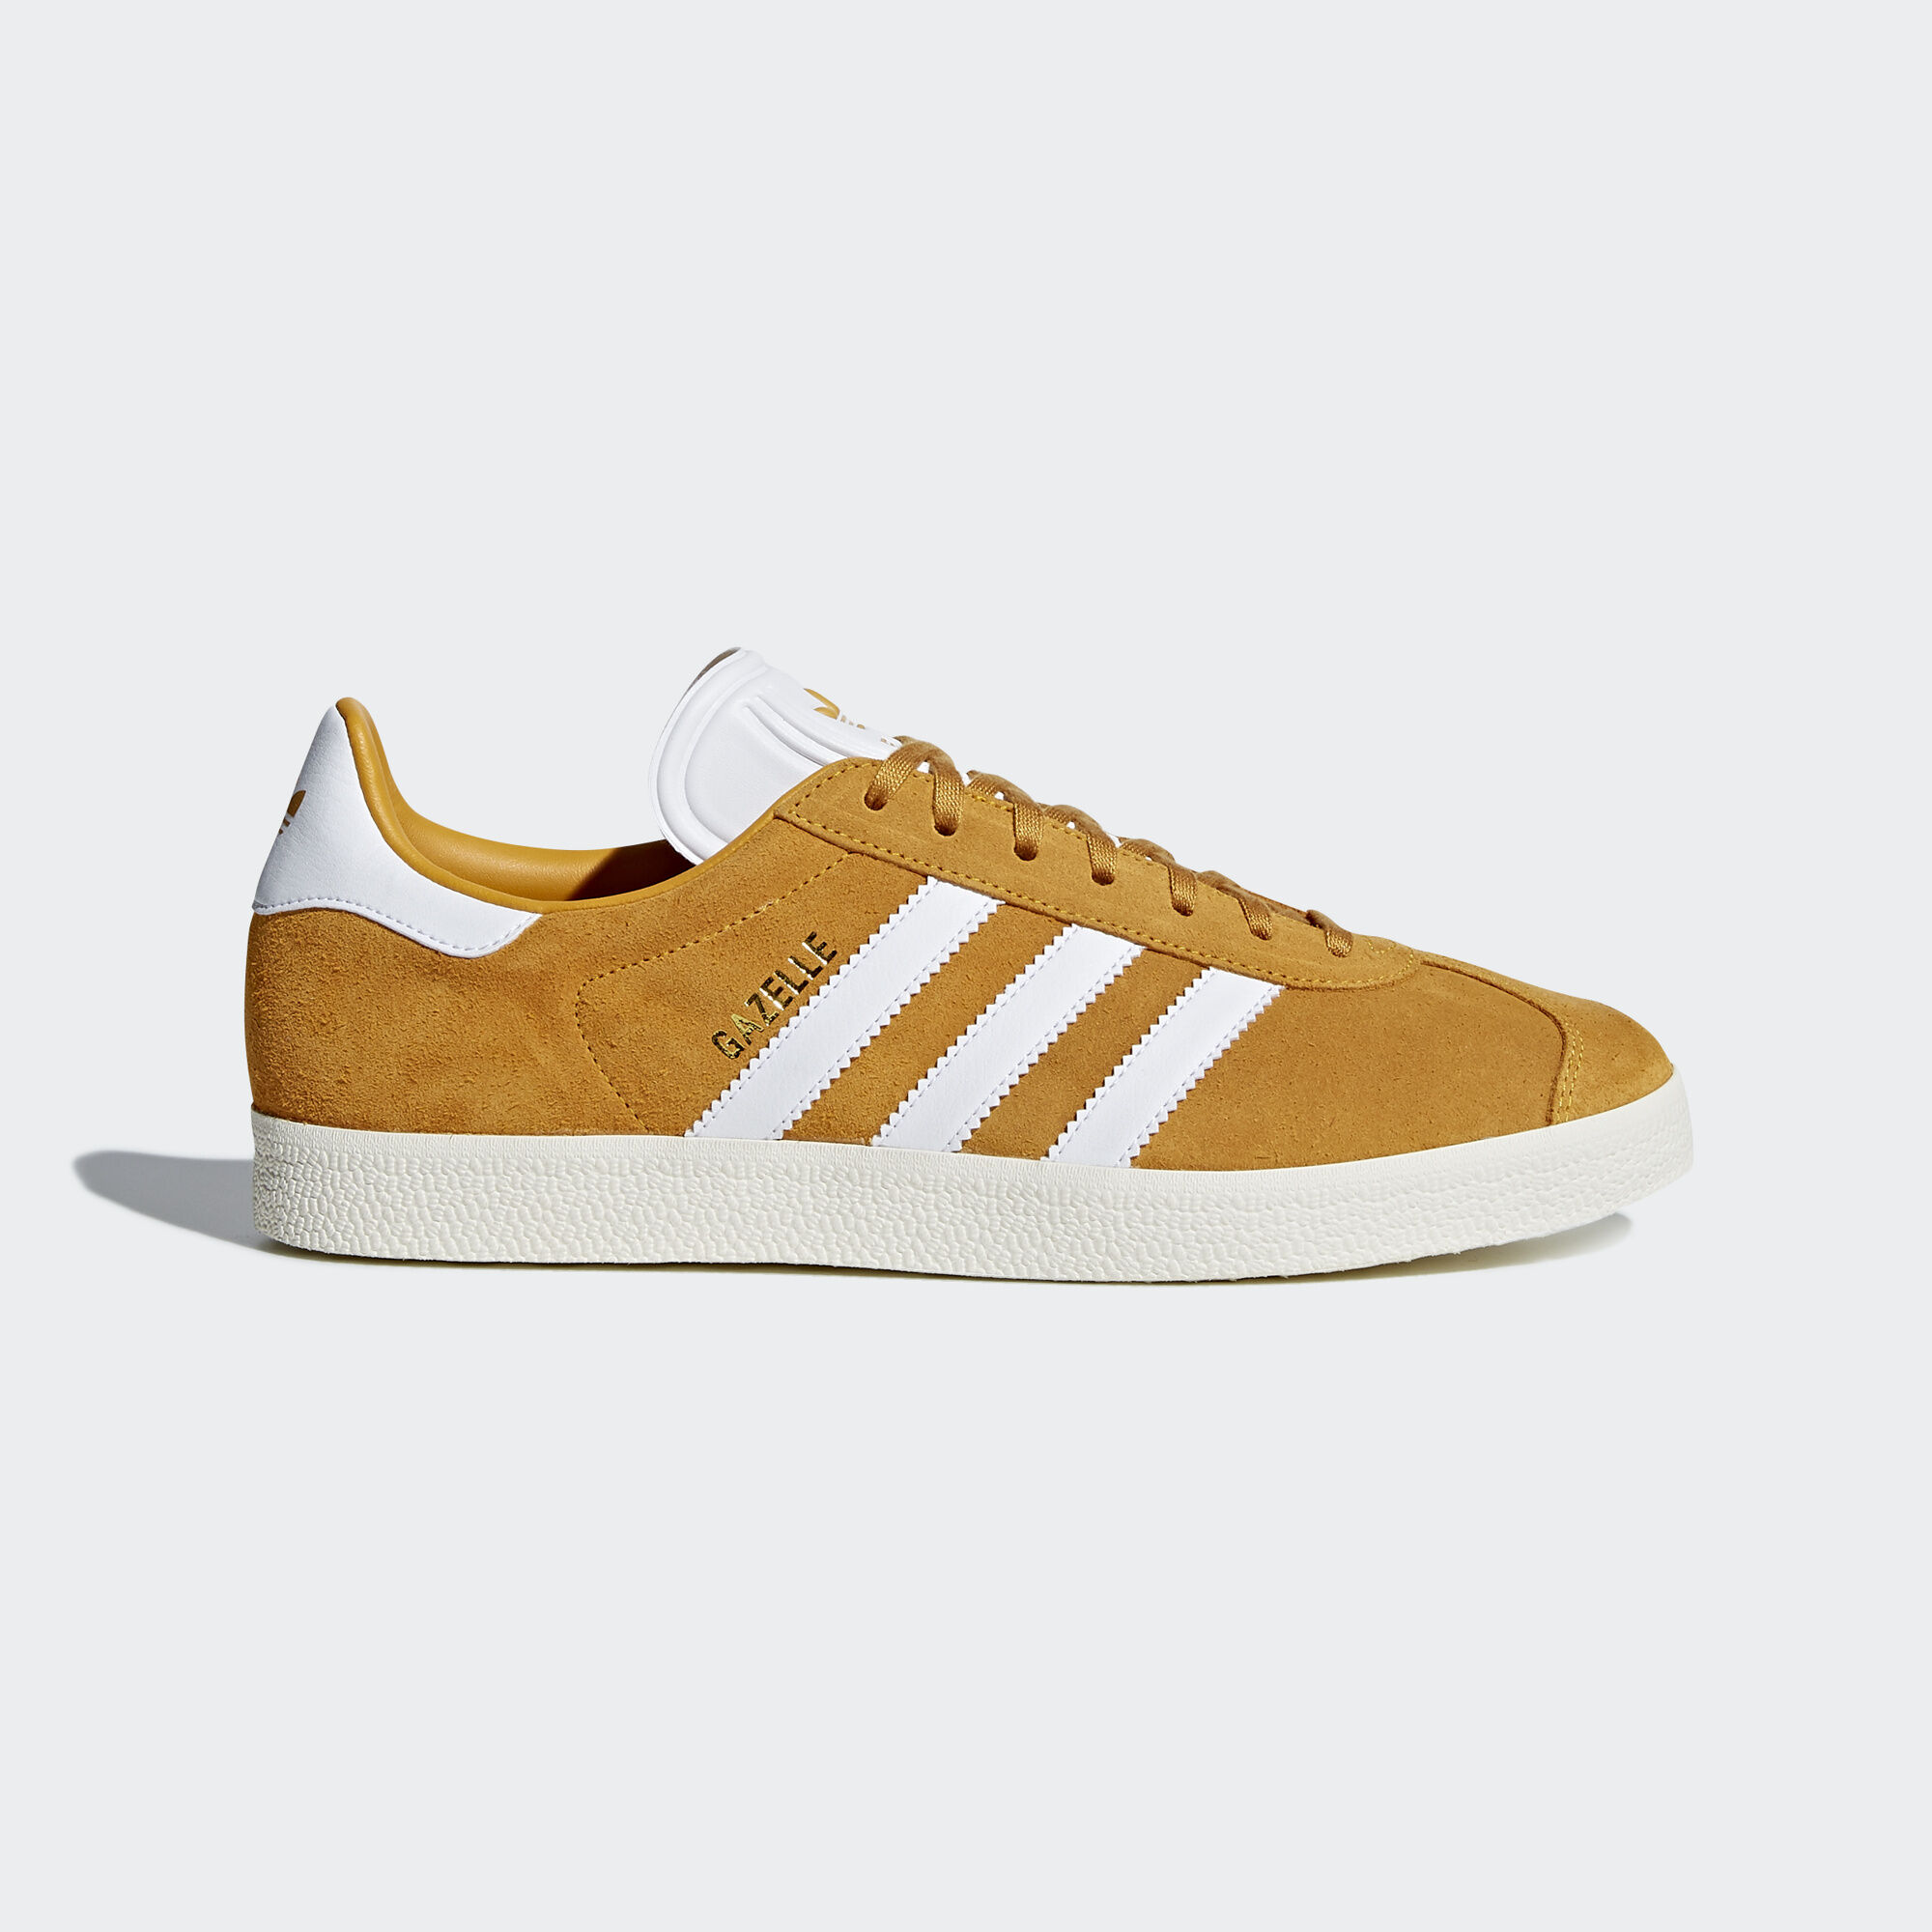 adidas sapatos gazelle laranja adidas mlt. Black Bedroom Furniture Sets. Home Design Ideas